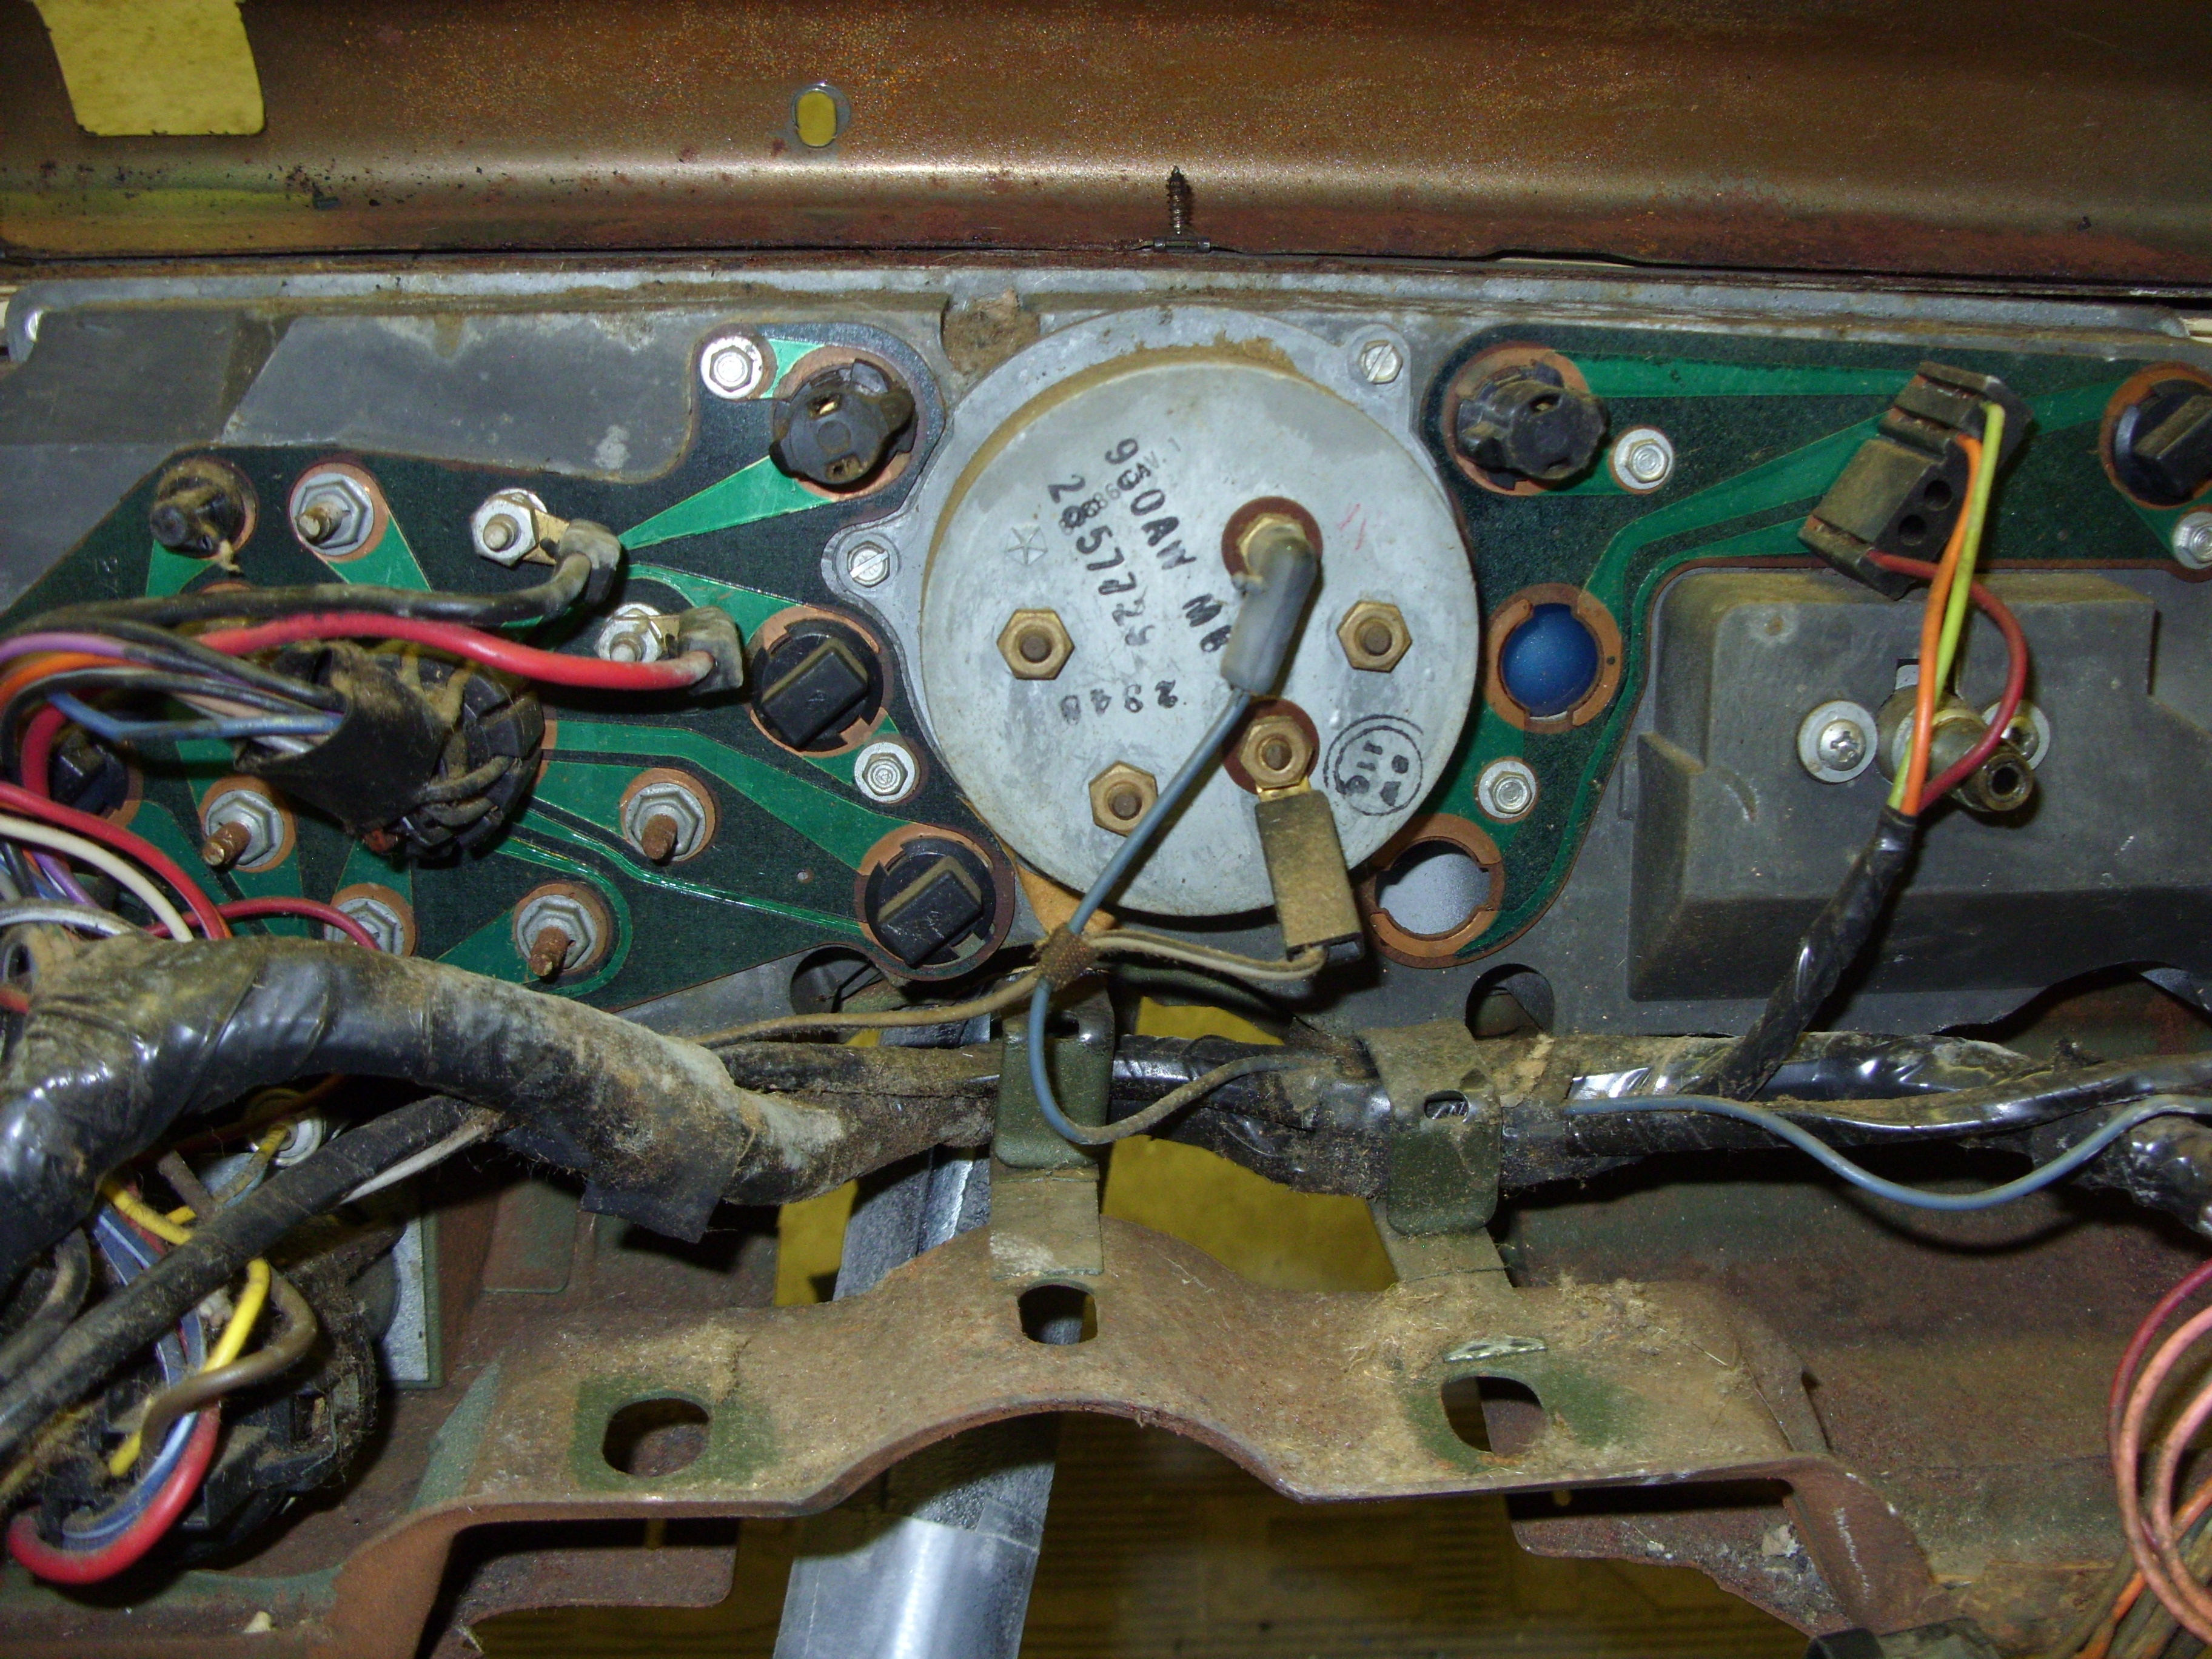 Daftar Harga 1969 Barracuda Dash Help For A Bodies Only